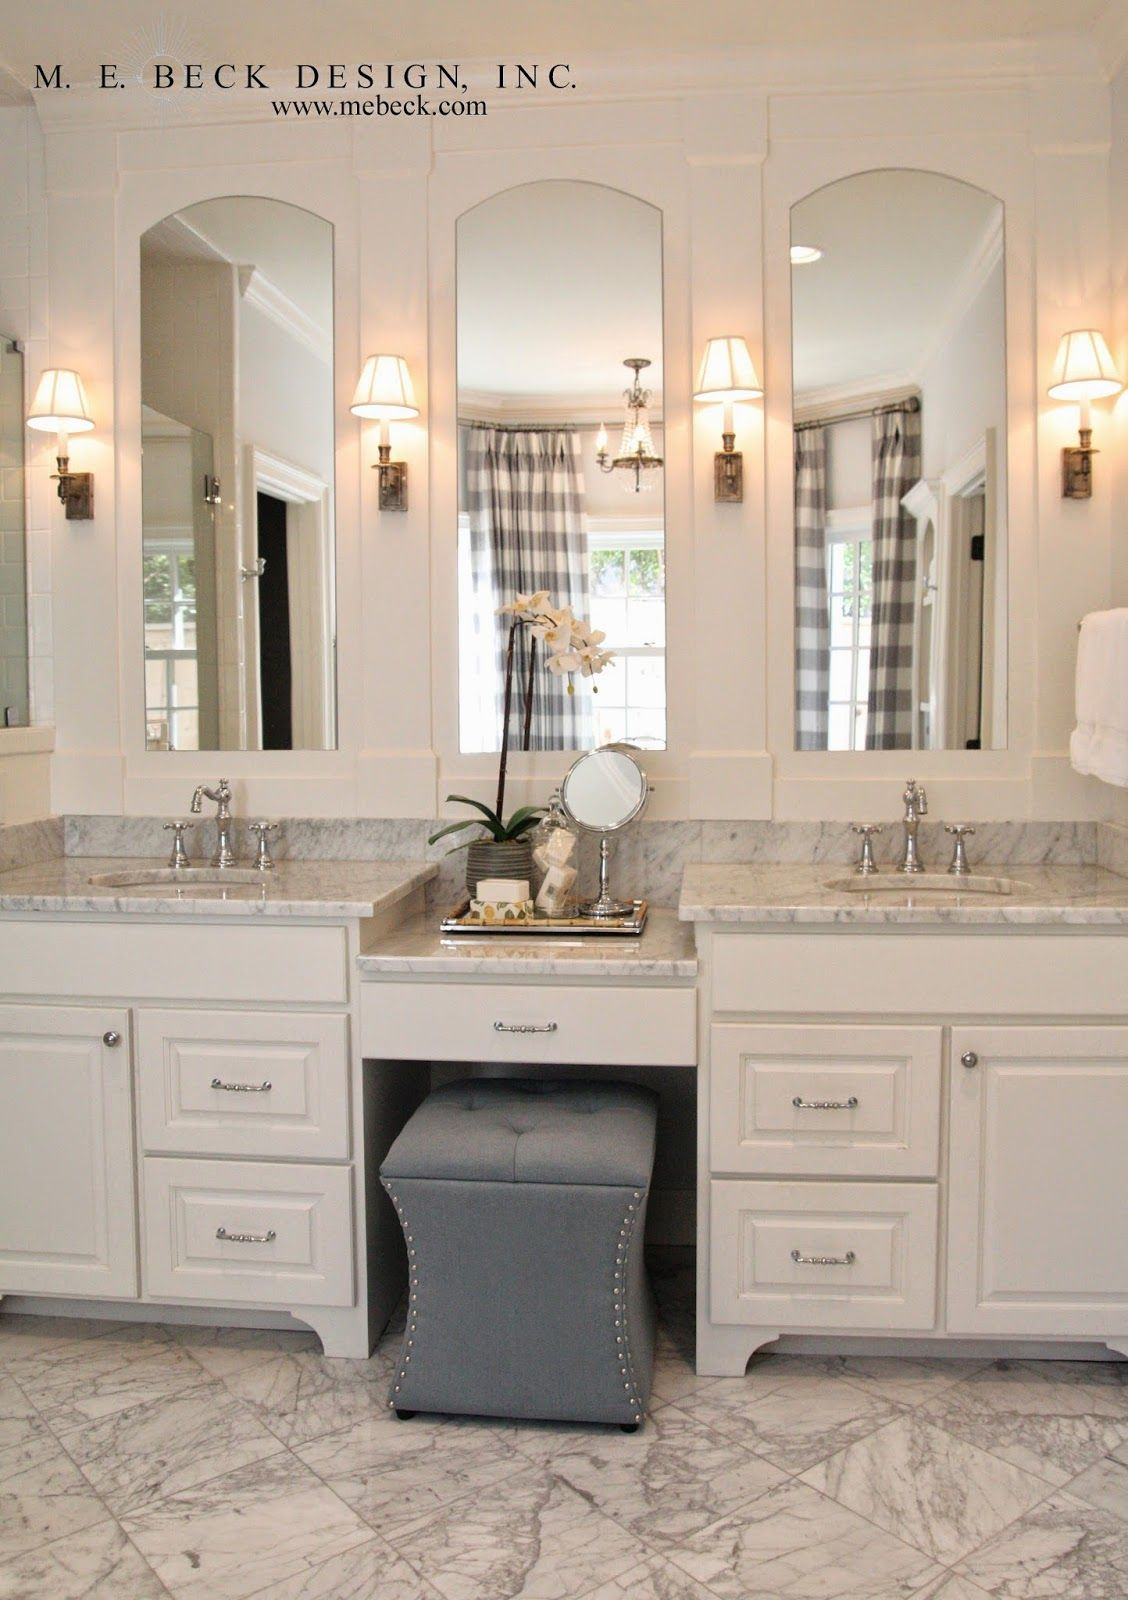 Bathroom Vanities With Sitting Area The Sit Down Area Is Nice For Makeup I Presume I Don T Know As